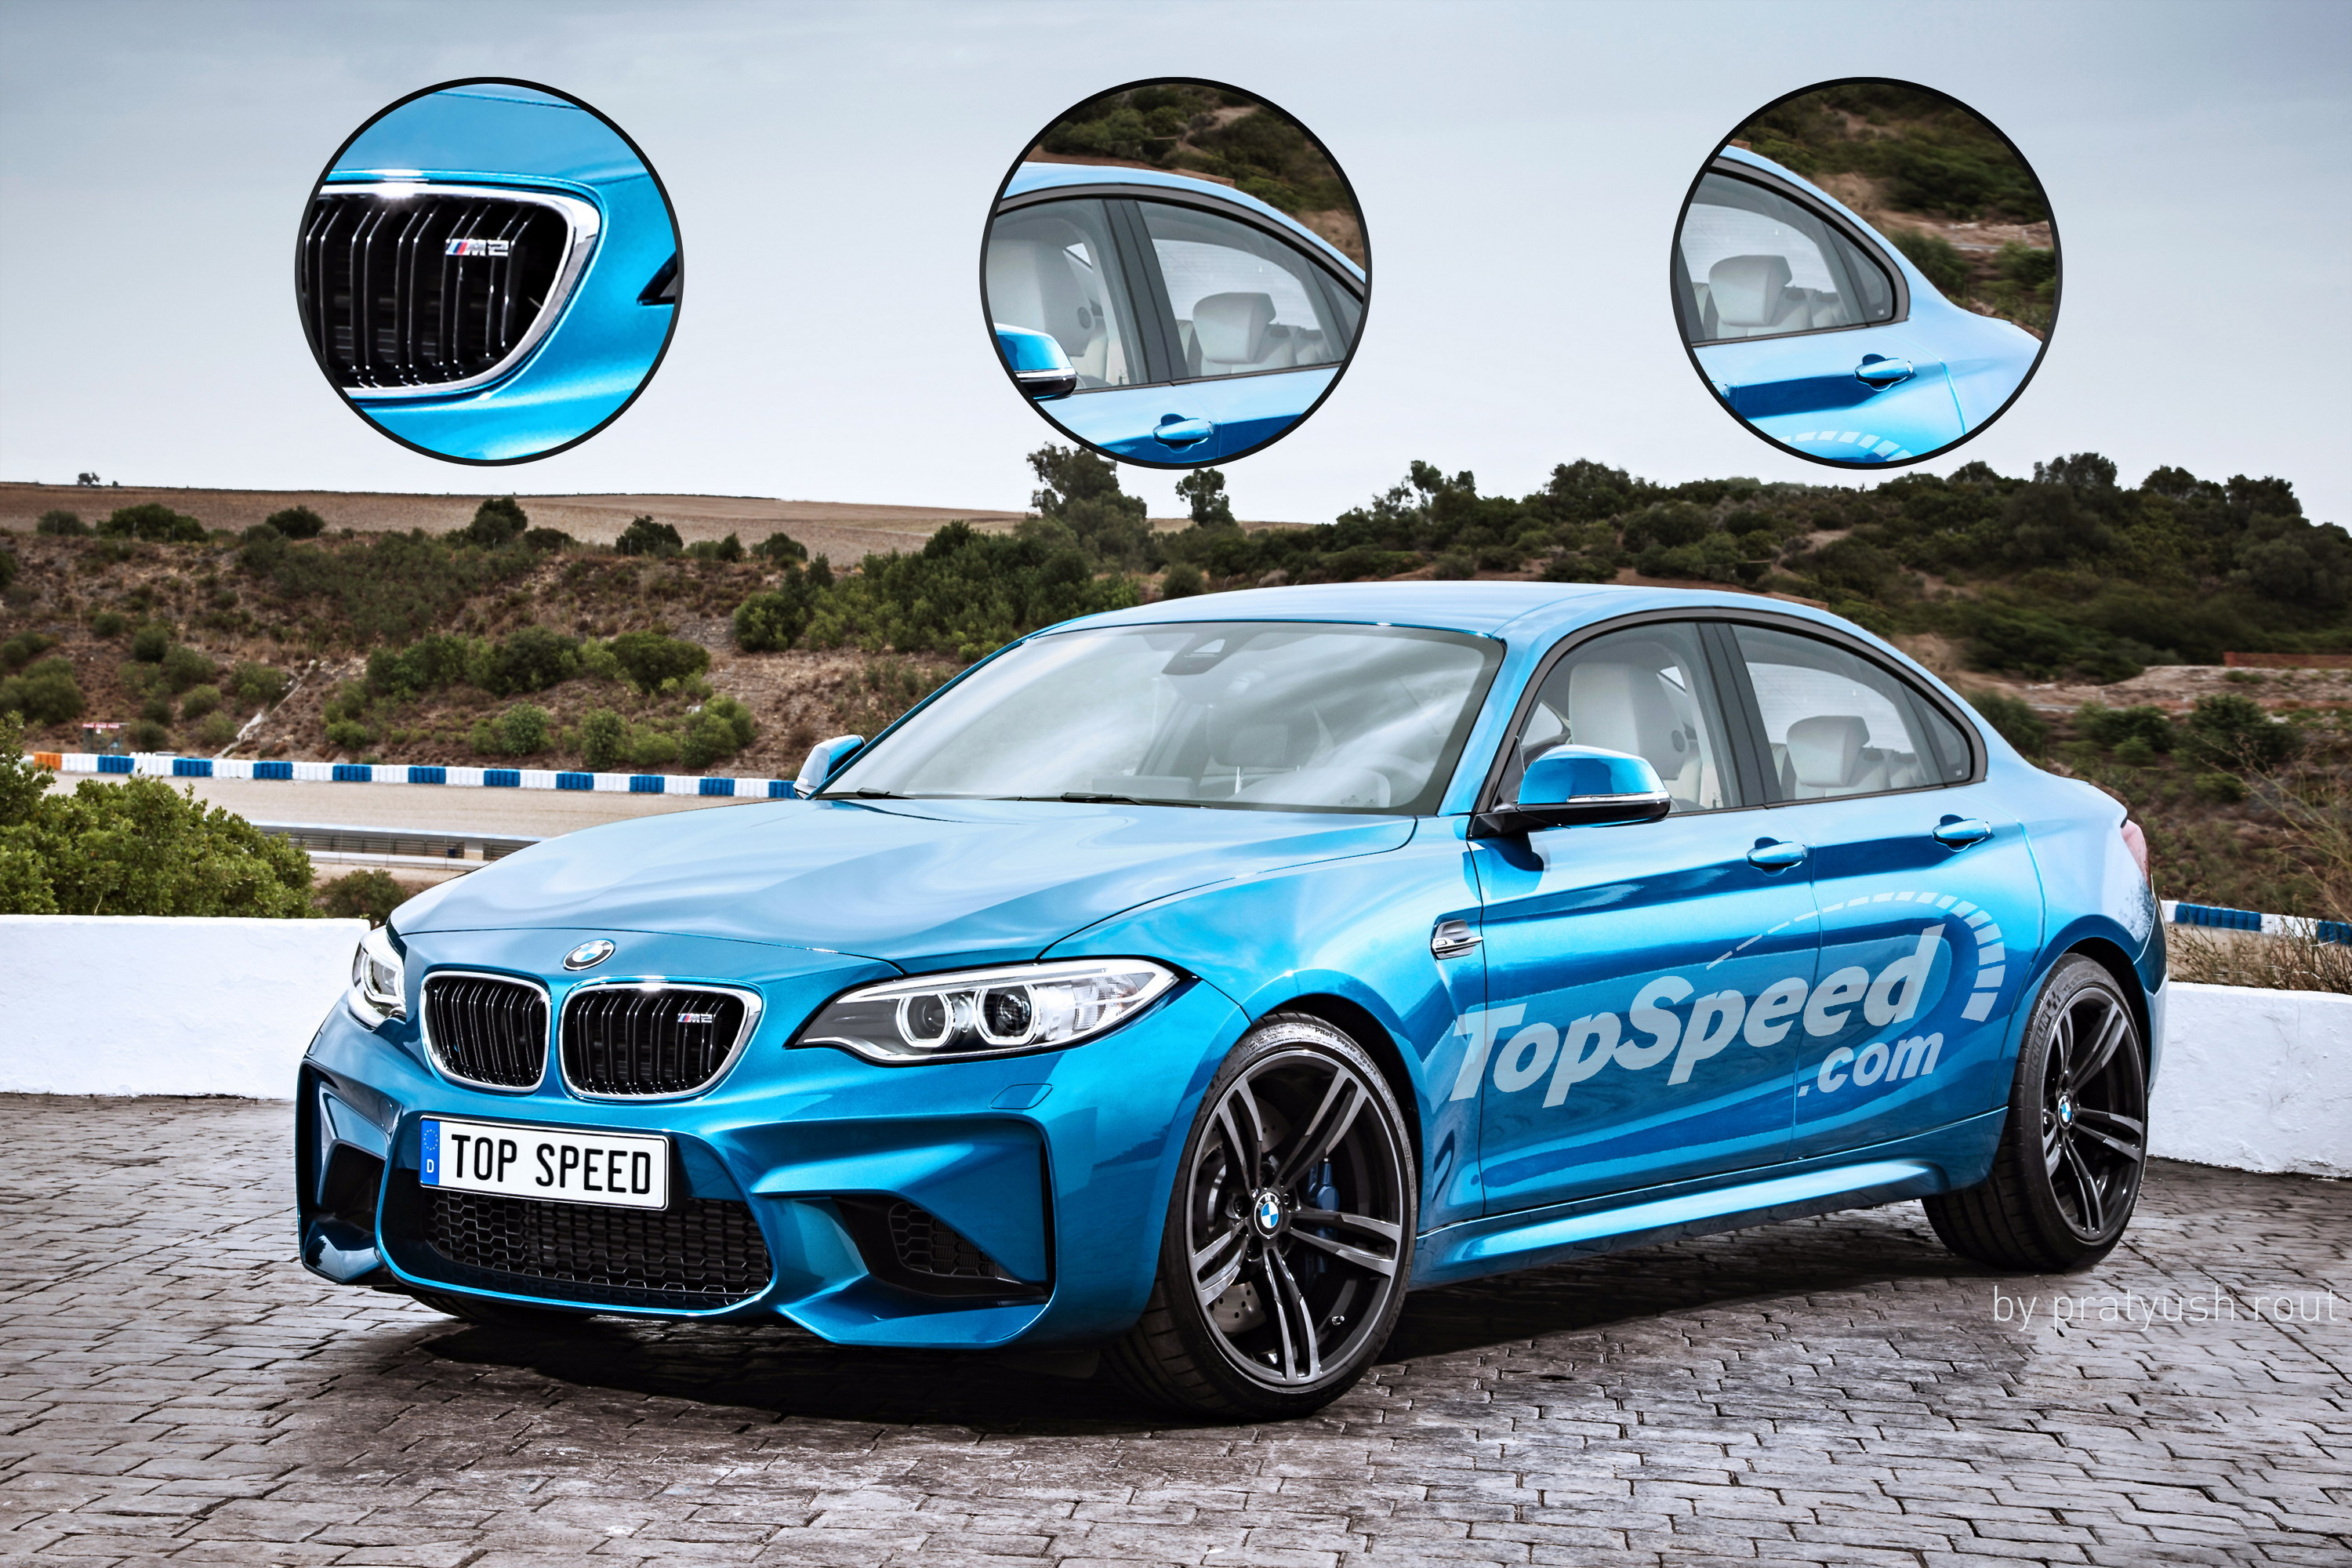 Bmw To Launch An M2 Gran Coupe In 2019 Top Speed